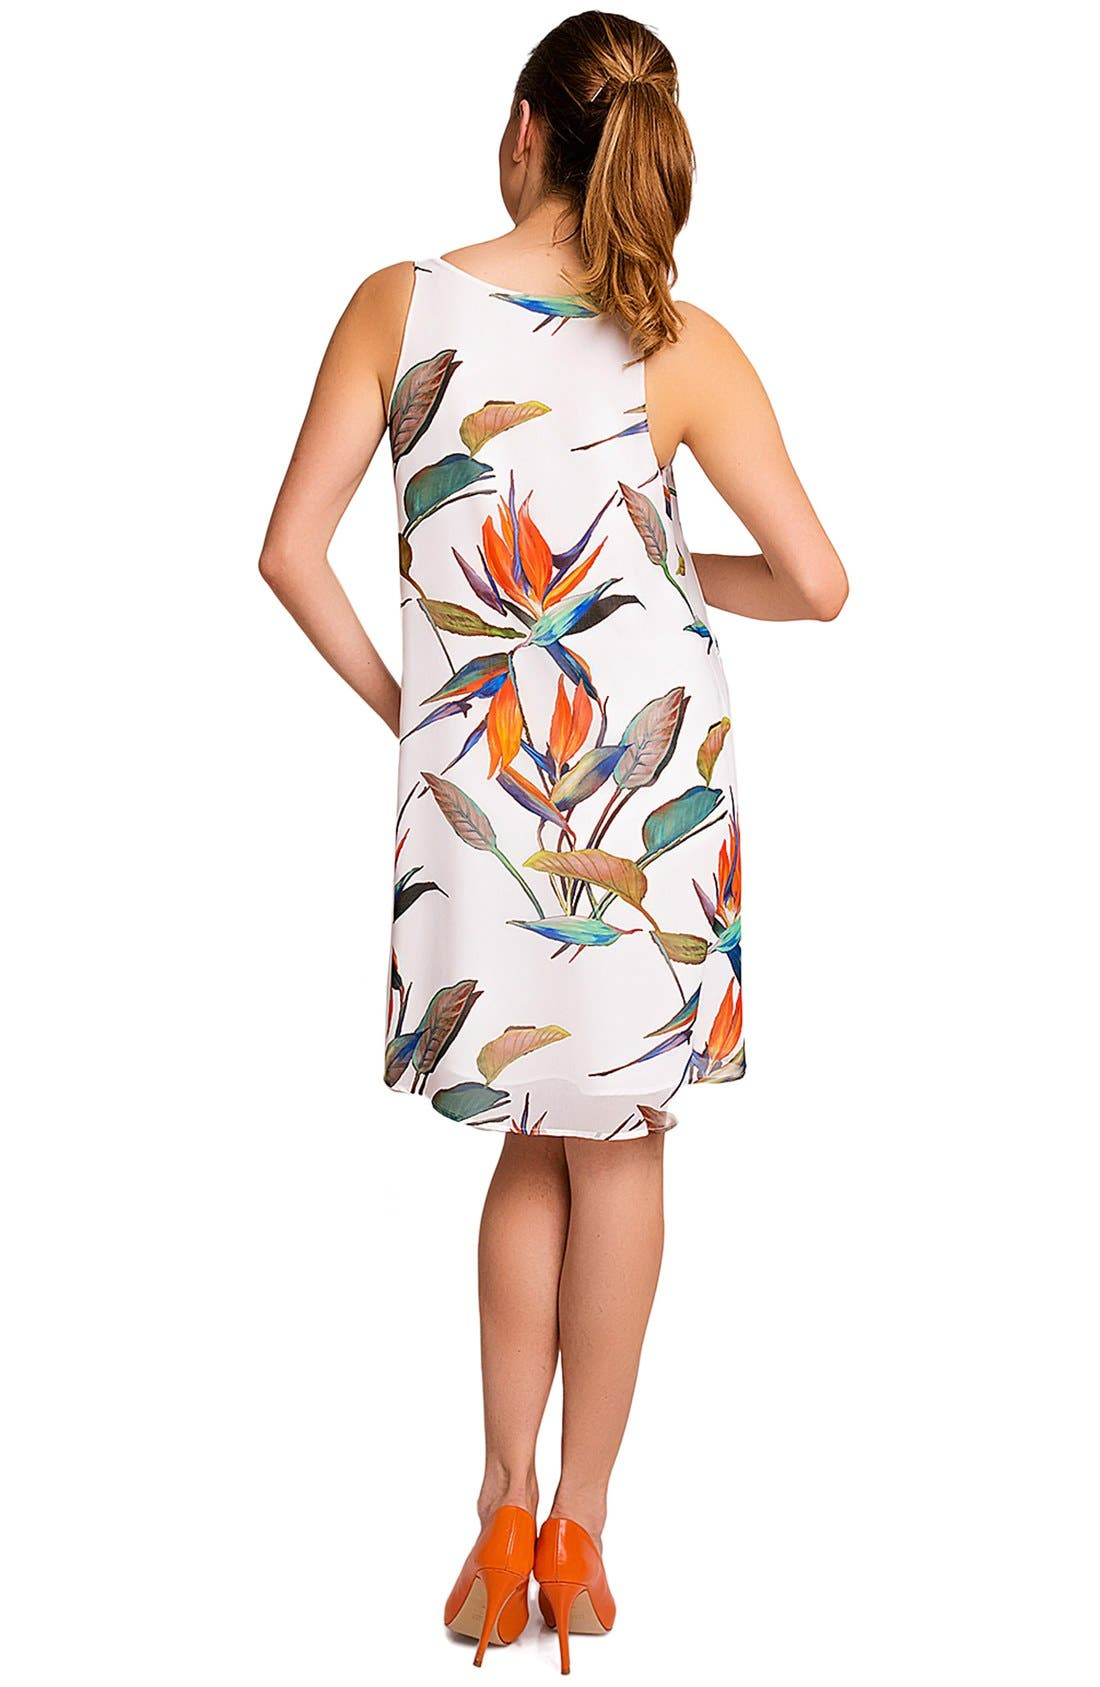 'Lago di Garda' Print Maternity Dress,                             Alternate thumbnail 2, color,                             051